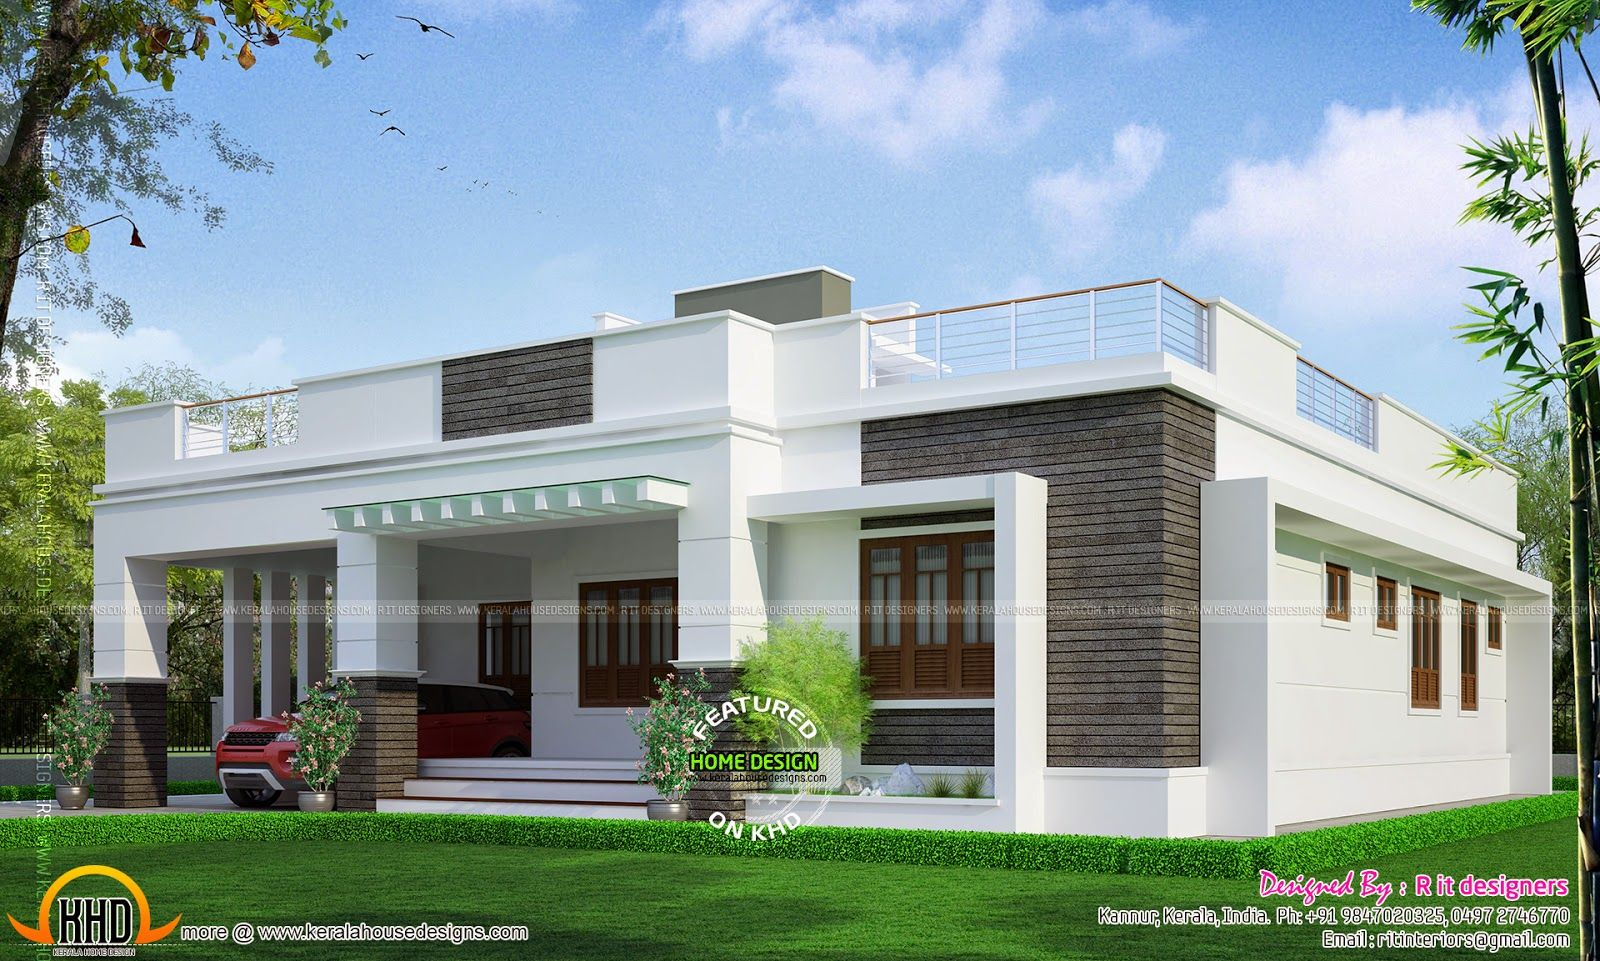 beautiful new single floor house plans pictures - today designs